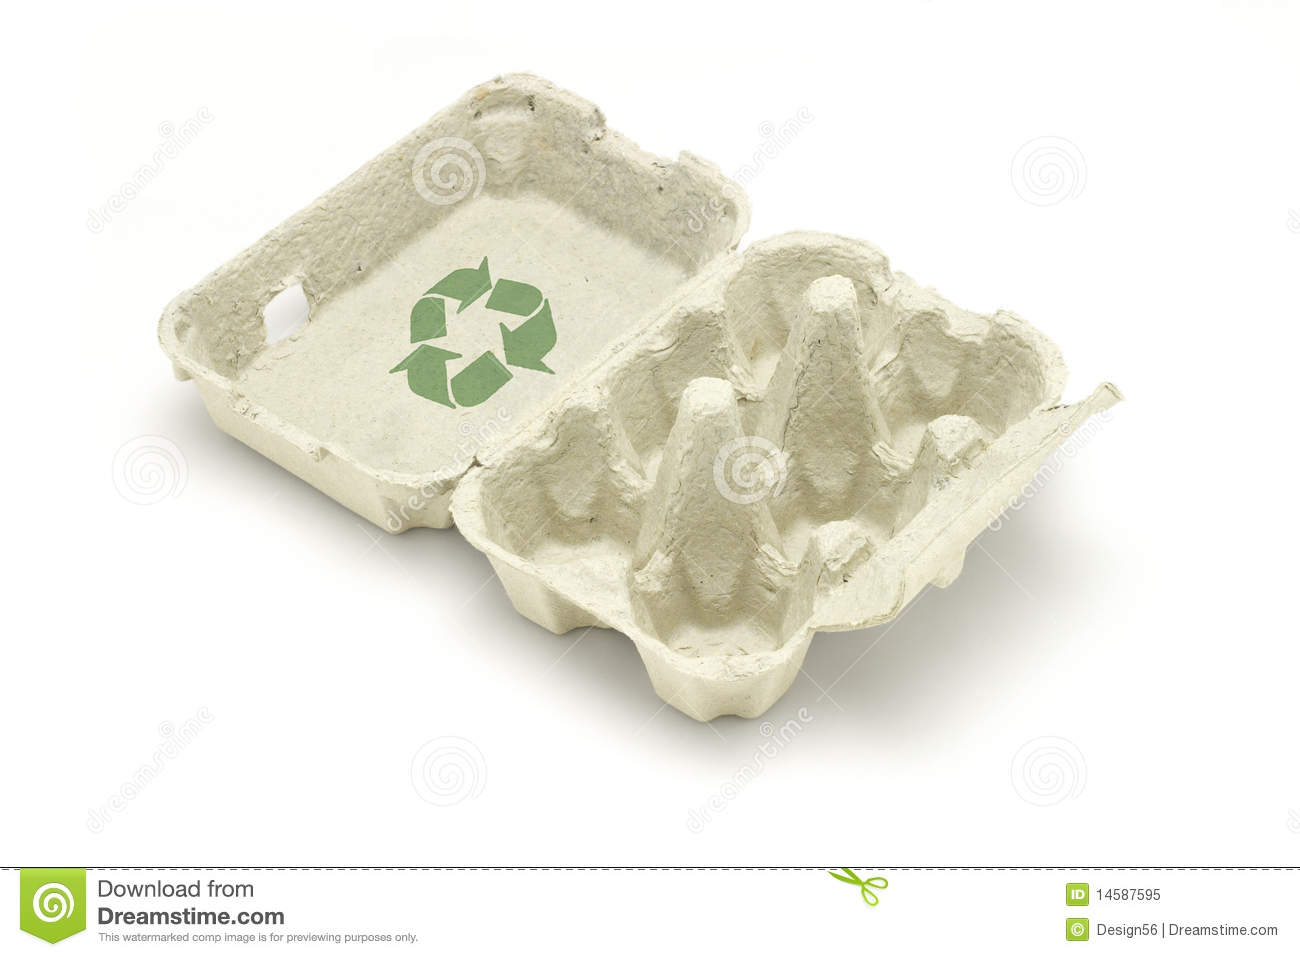 recycle symbol on egg carton royalty free stock photo